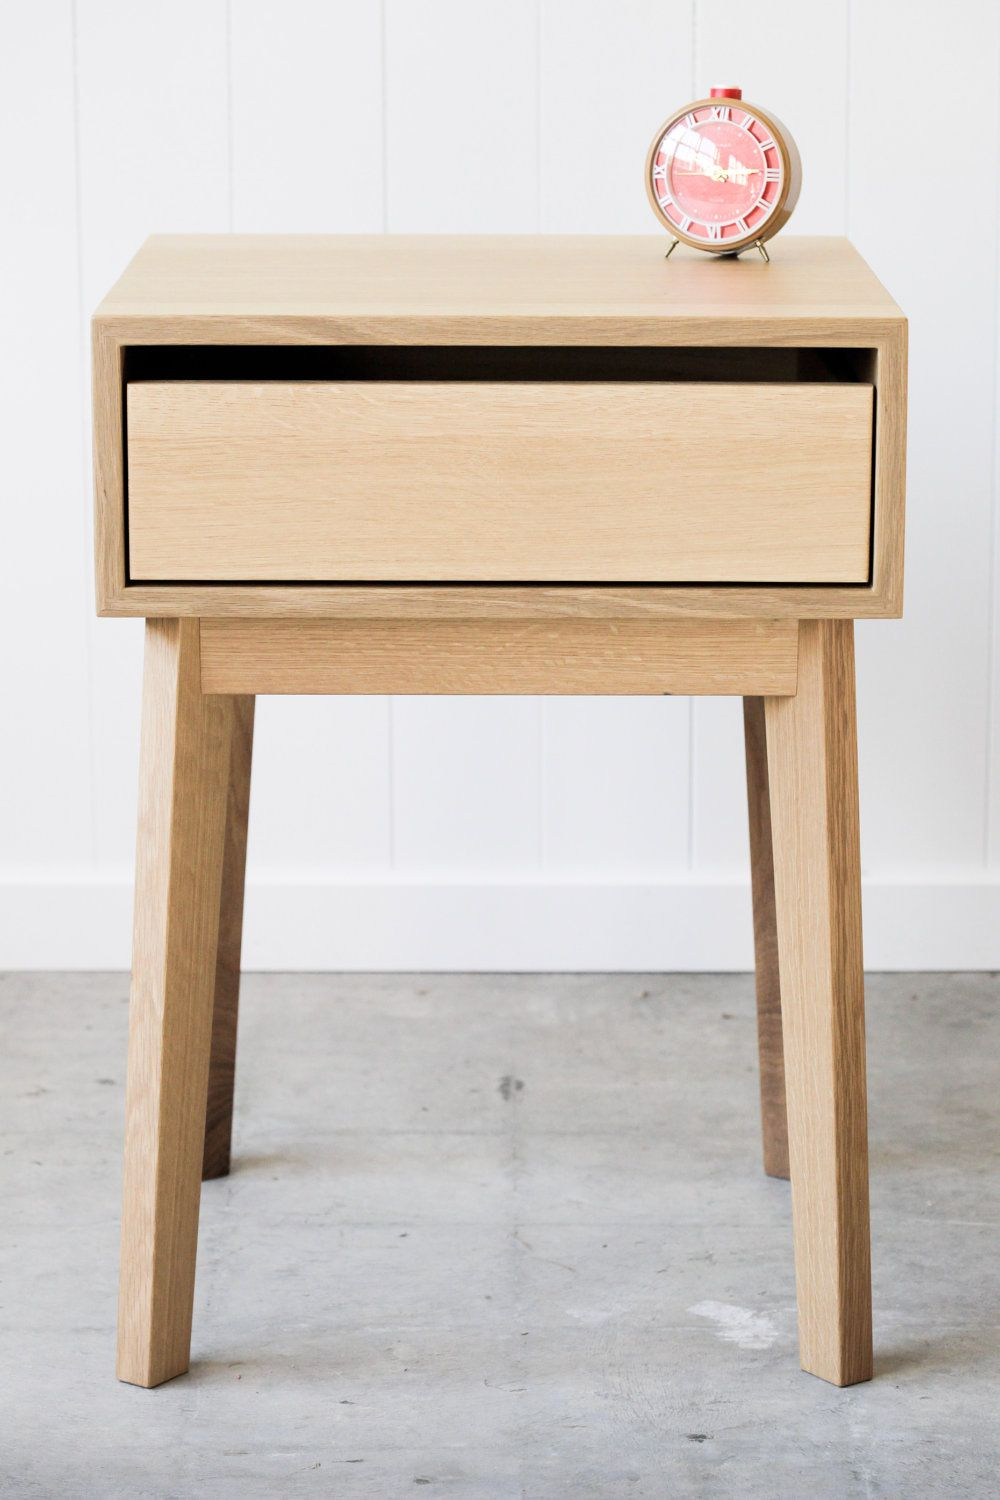 Two in stock - Solid Quarter Sawn White Oak Nightstand $425 ...